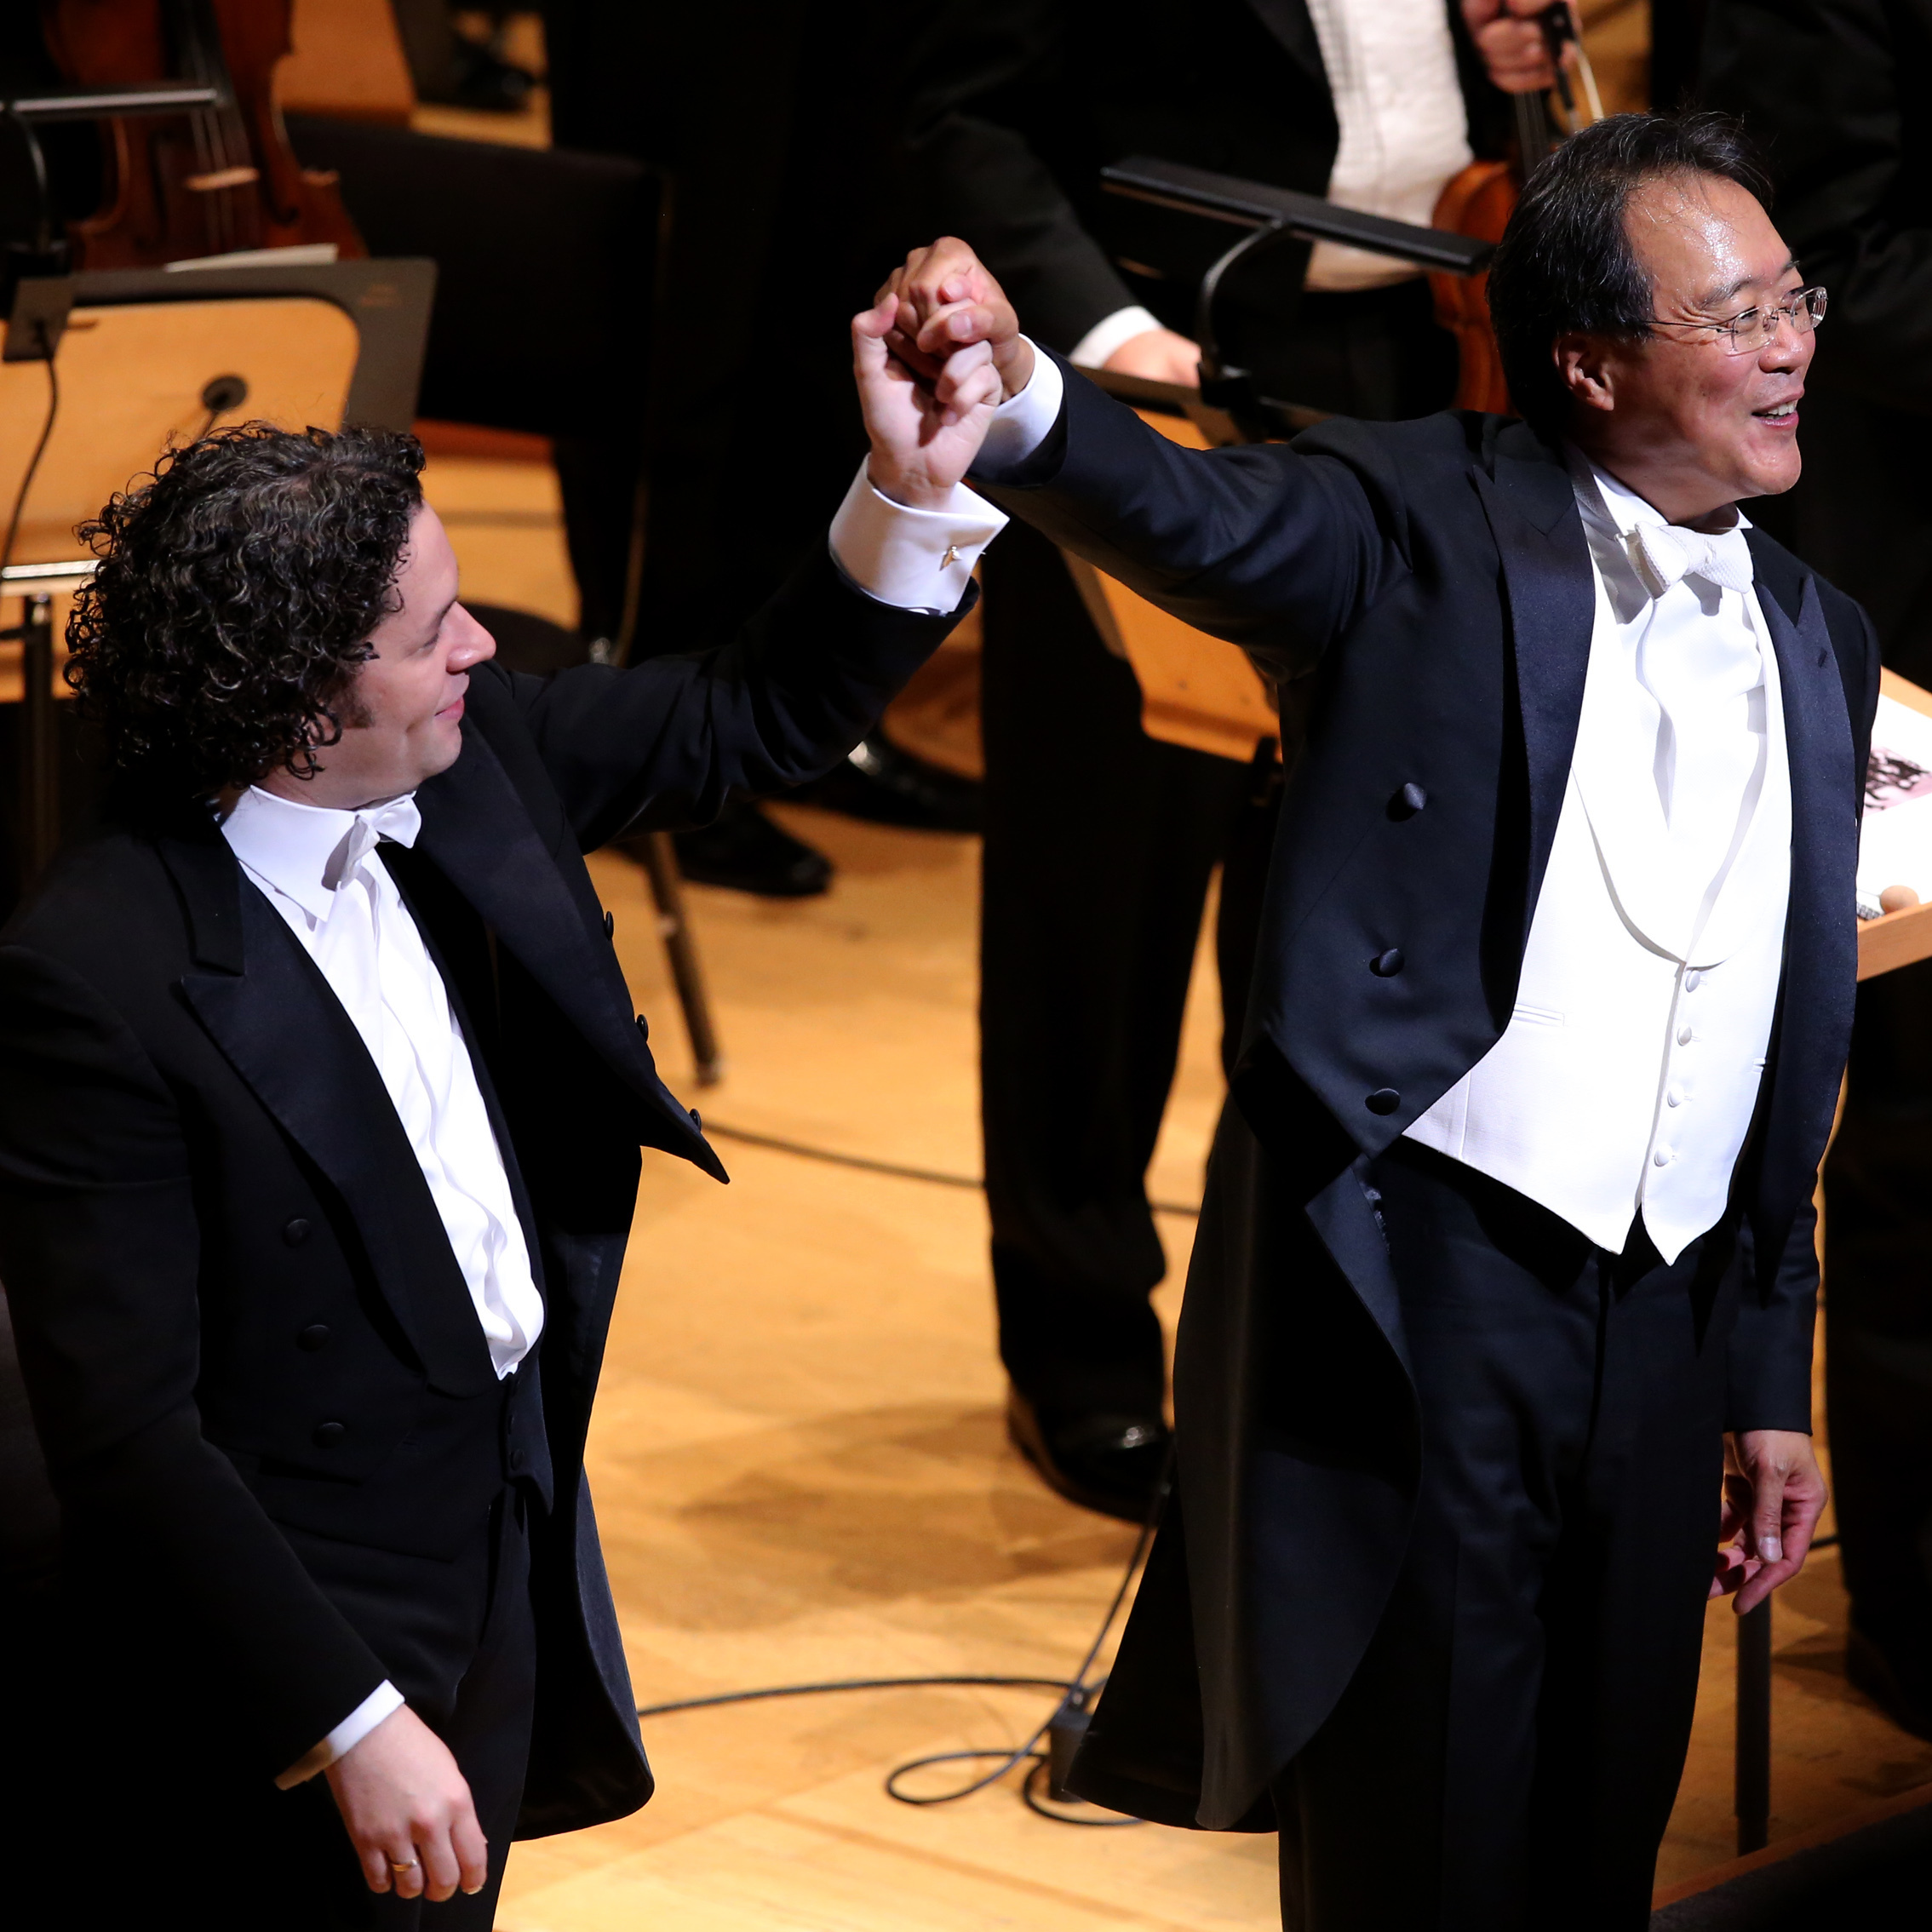 Gustavo Dudamel, music director of the LA Philharmonic, with cellist Yo-Yo Ma at Disney Hall's 10th anniversary opening night gala concert.